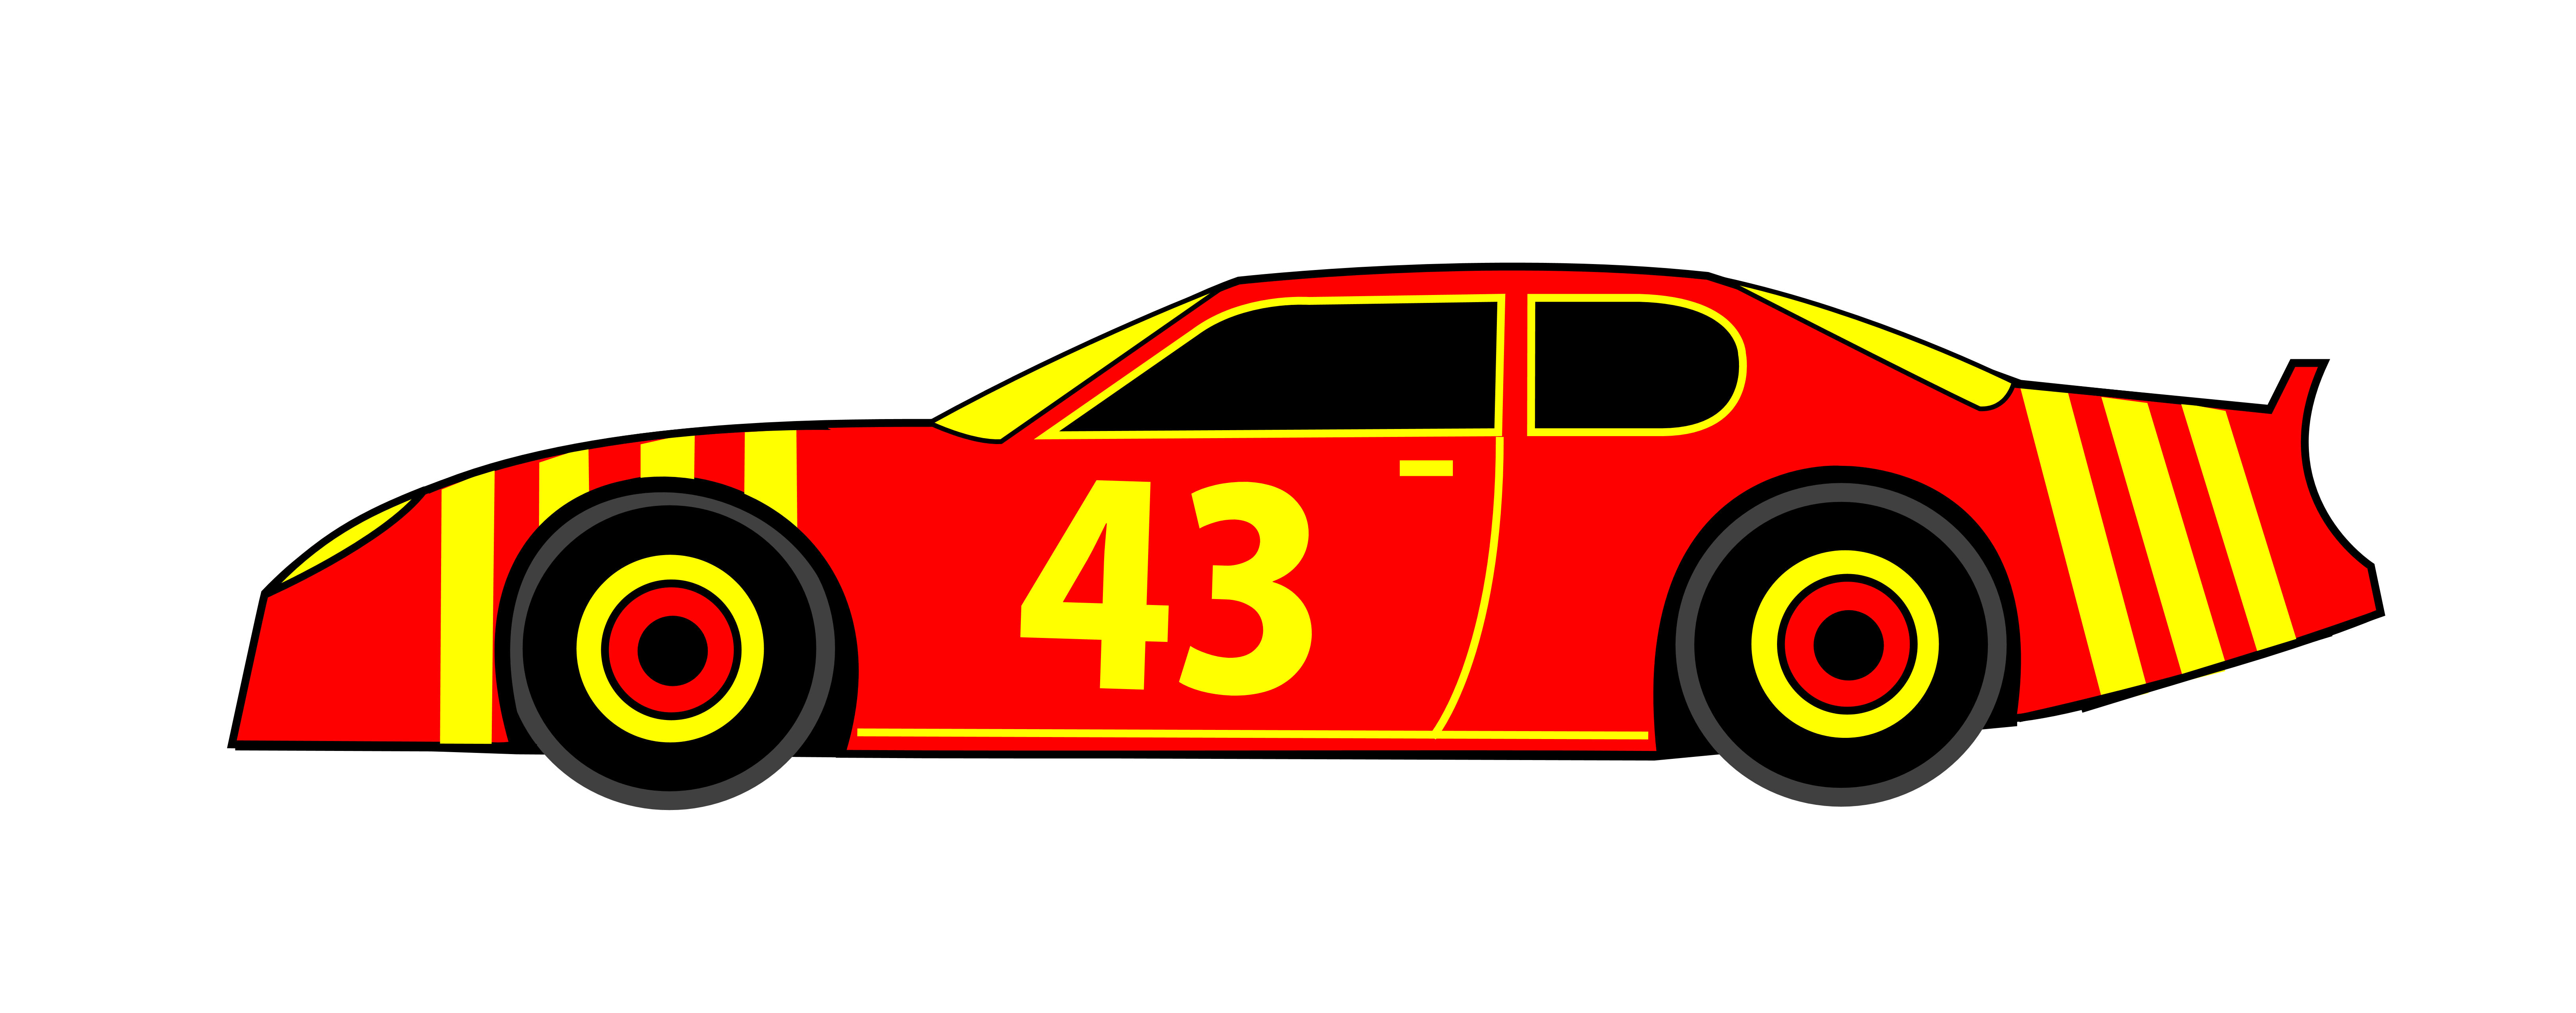 6500x2555 Race Car Clipart Craft Projects, Transportations Clipart